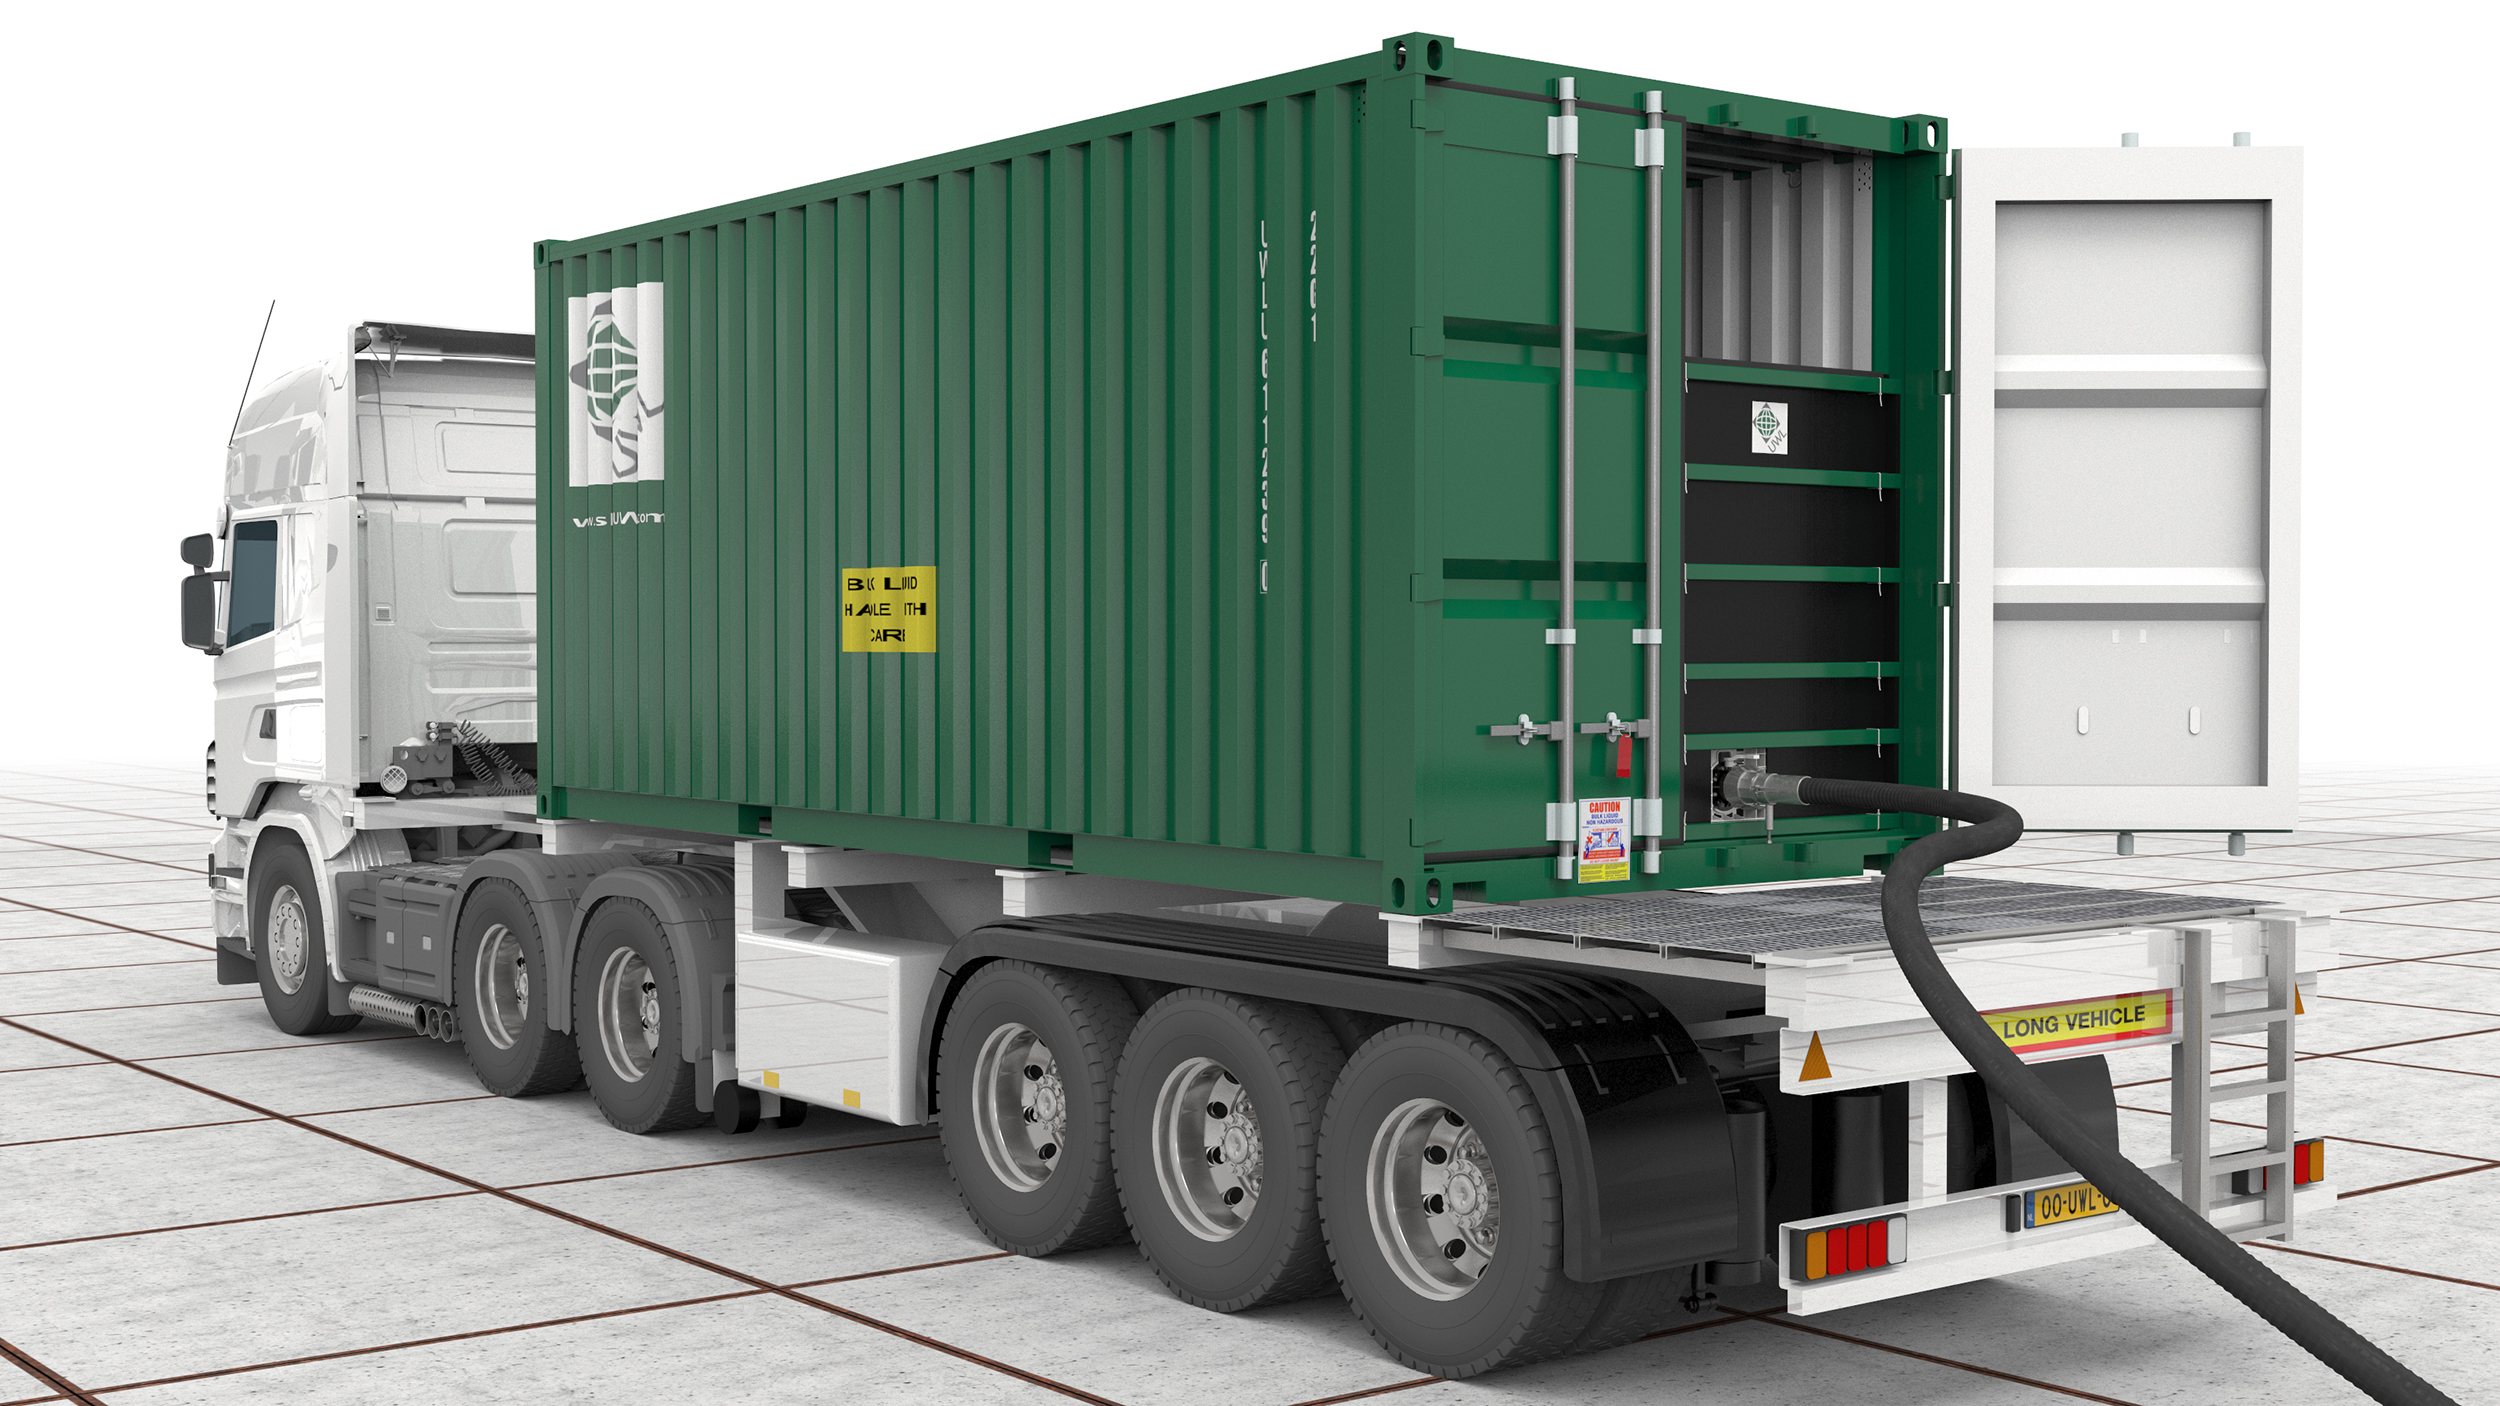 Global Freight Forwarder UWL Launches New FlexiTank Product, Expands